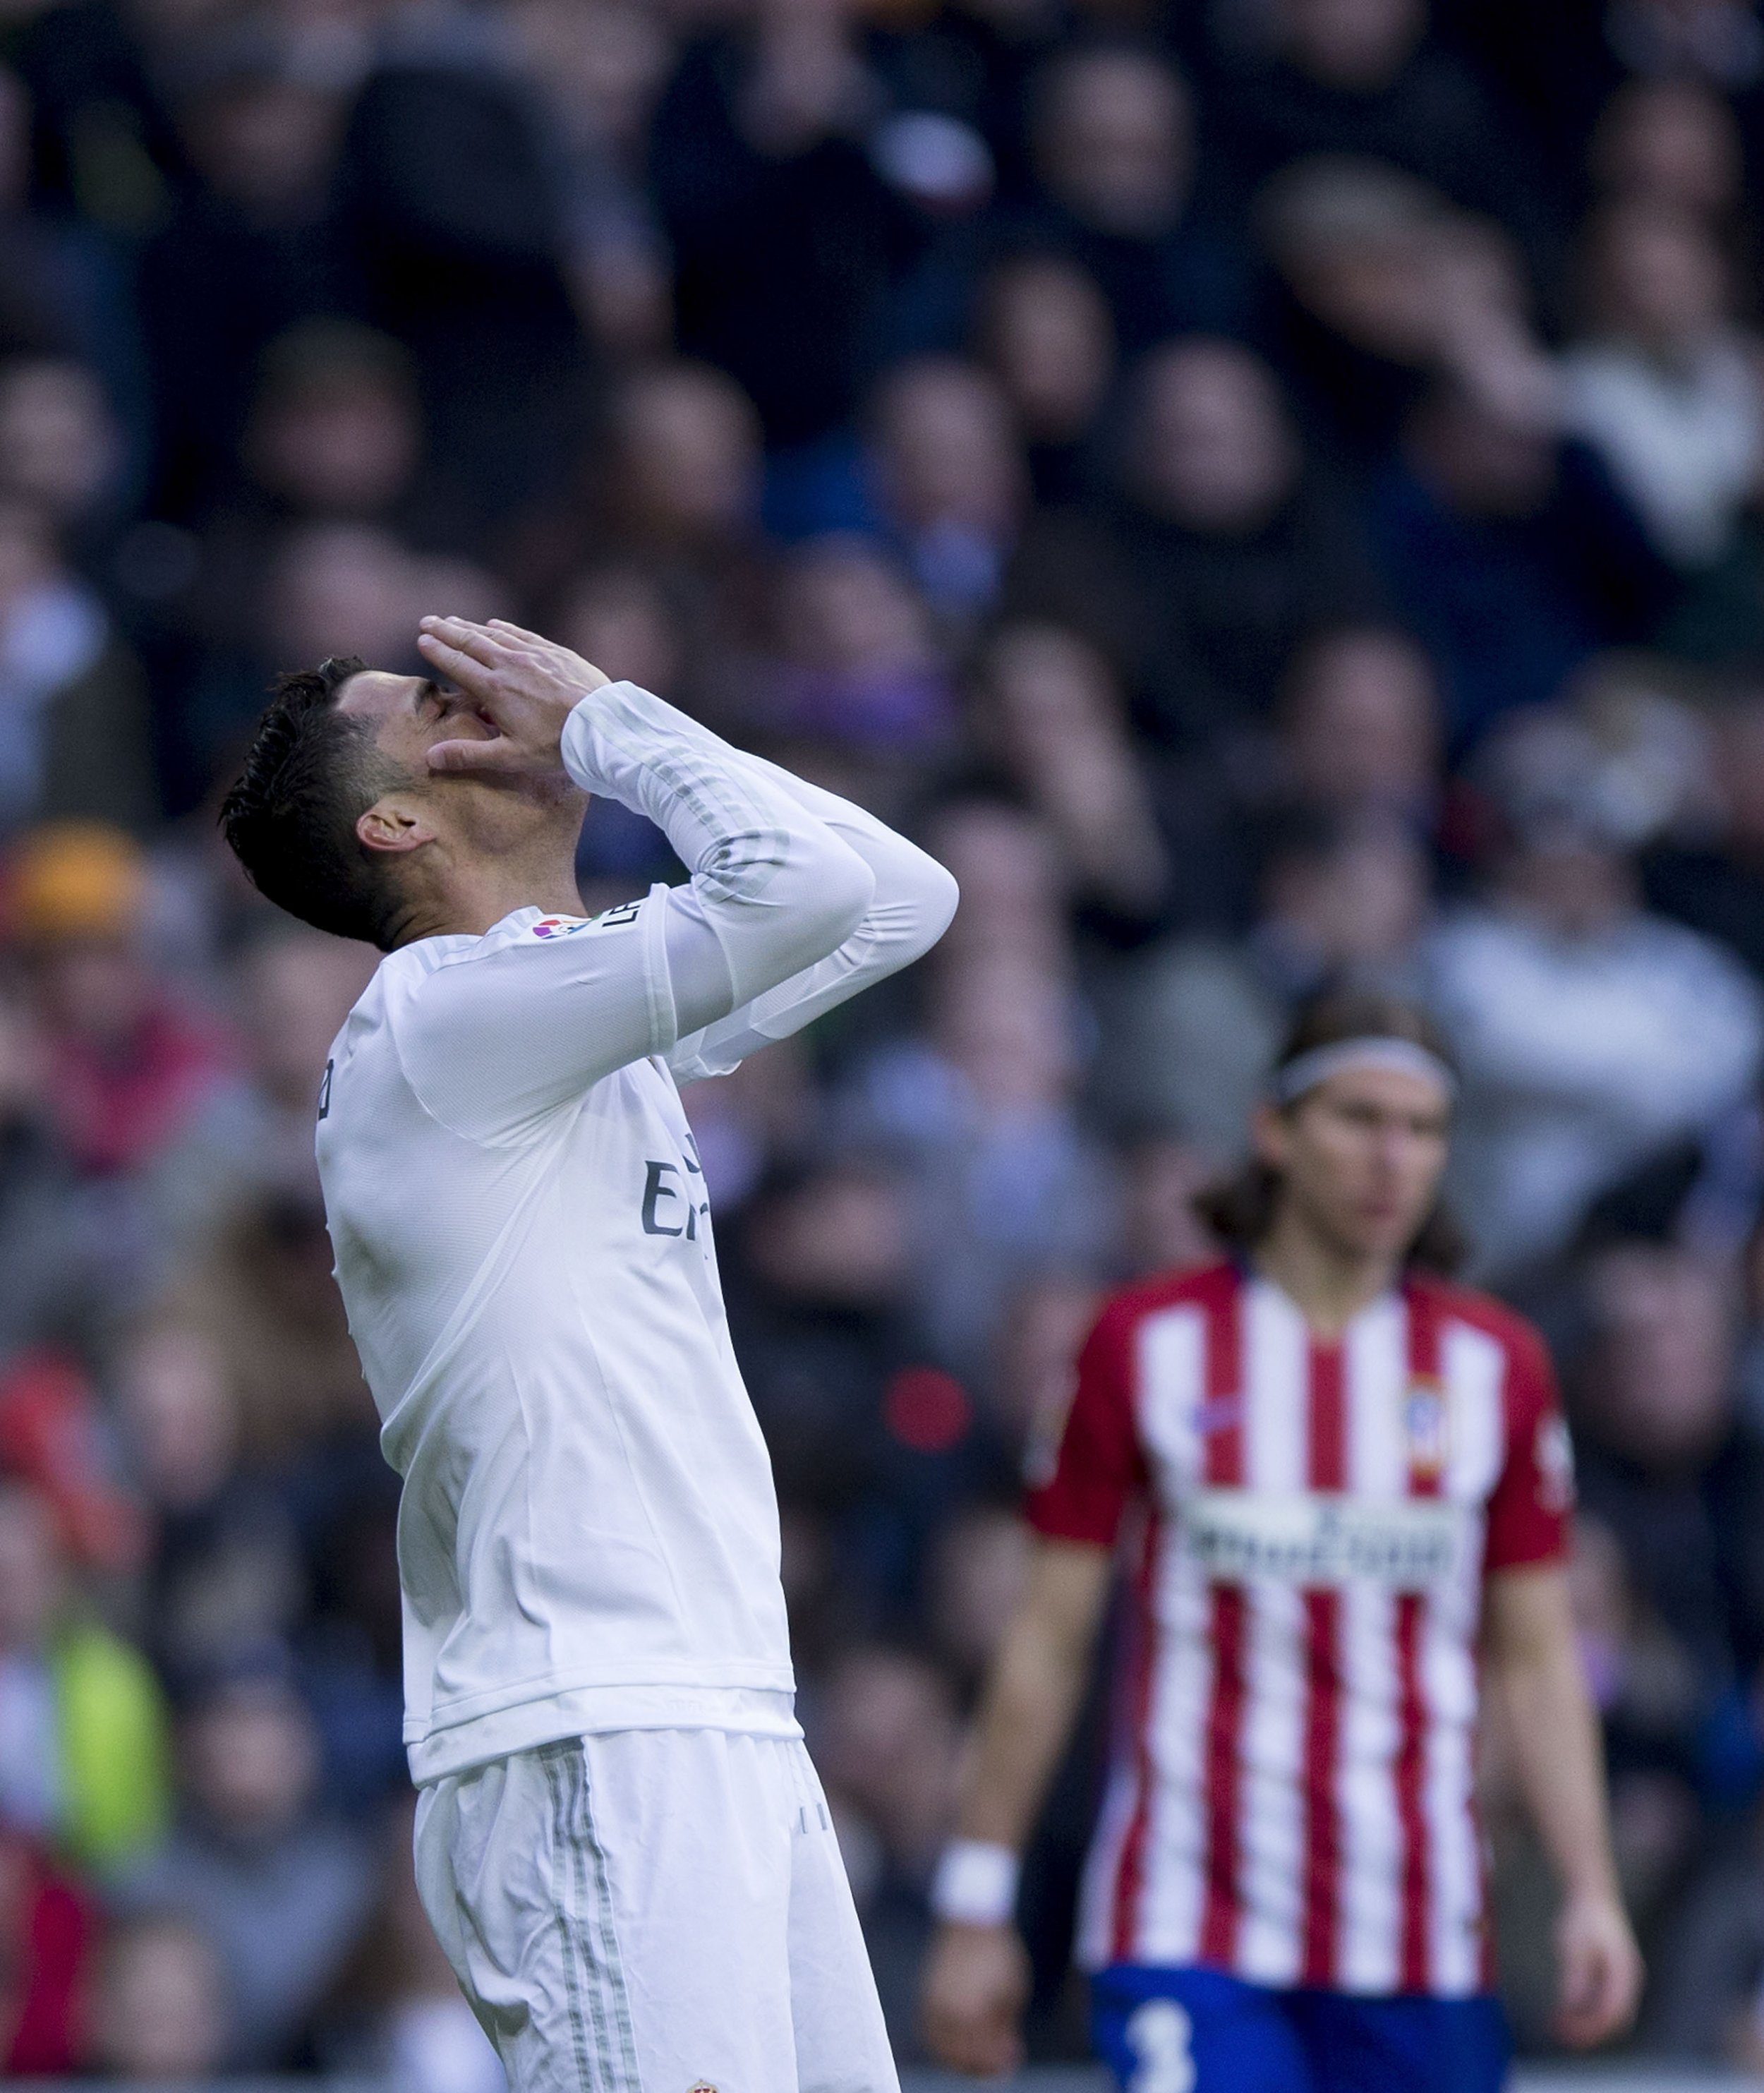 Cristiano Ronaldo's future at Real Madrid appears uncertain.